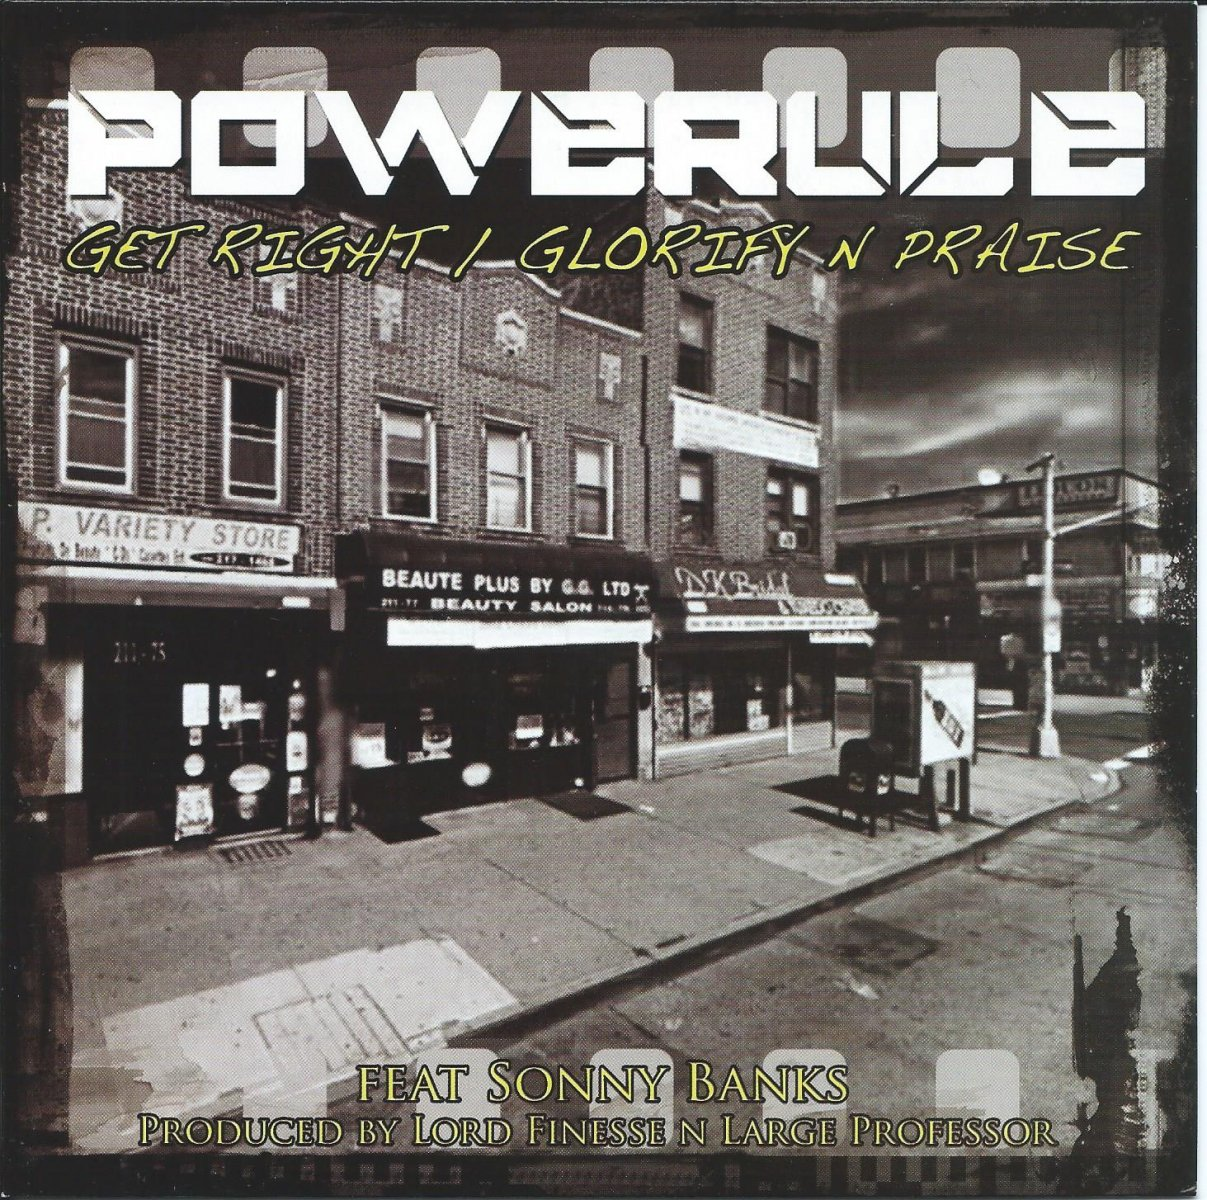 POWERULE ‎/ GLORIFY N PRAISE (PROD BY LARGE PROFESSOR) / GET RIGHT (PROD BY LORD FINESSE) (7